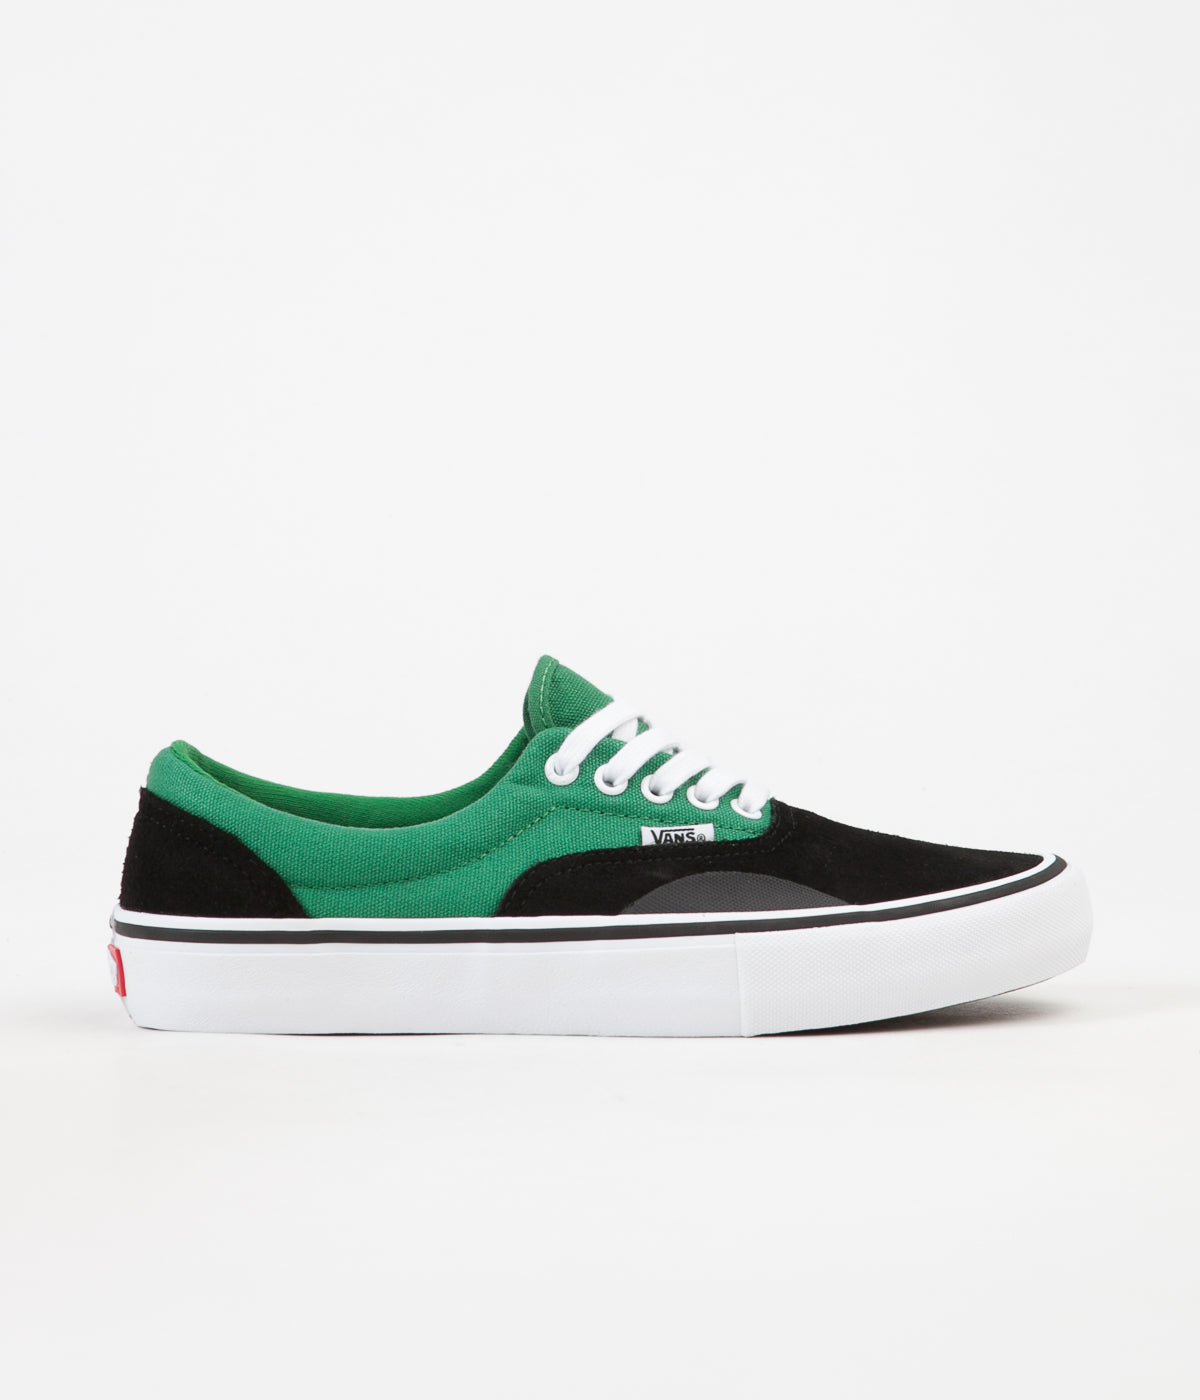 Vans Era Pro Shoes - Black / Amazon